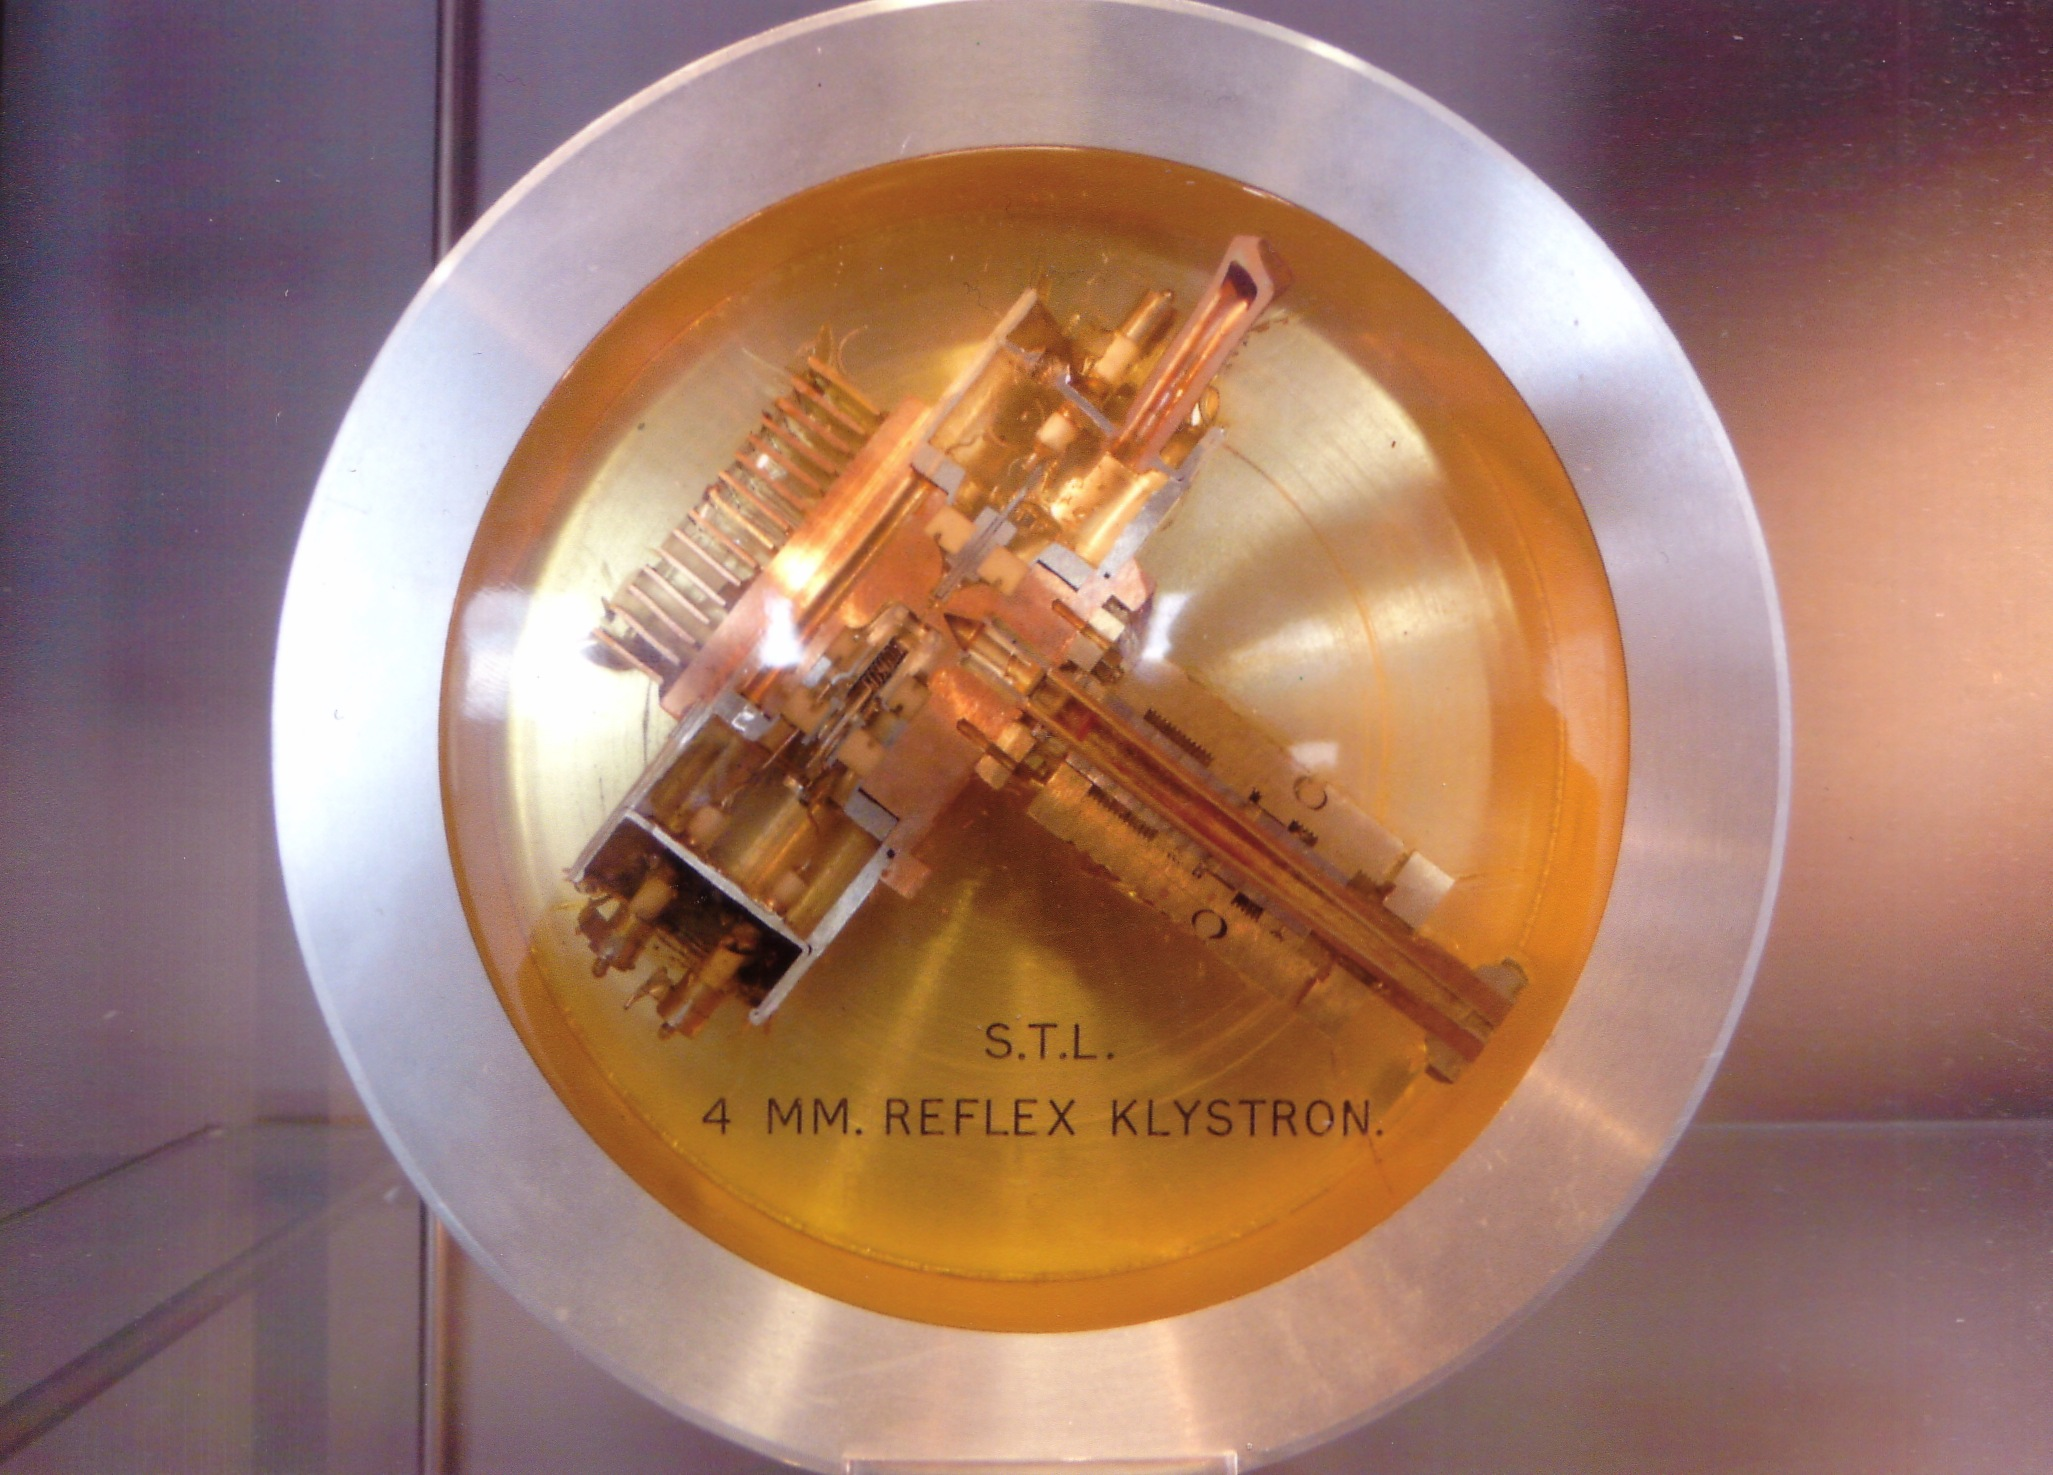 A miniature kylstron, now displayed at UCL, developed by Tom Jackson's group in the 1960s